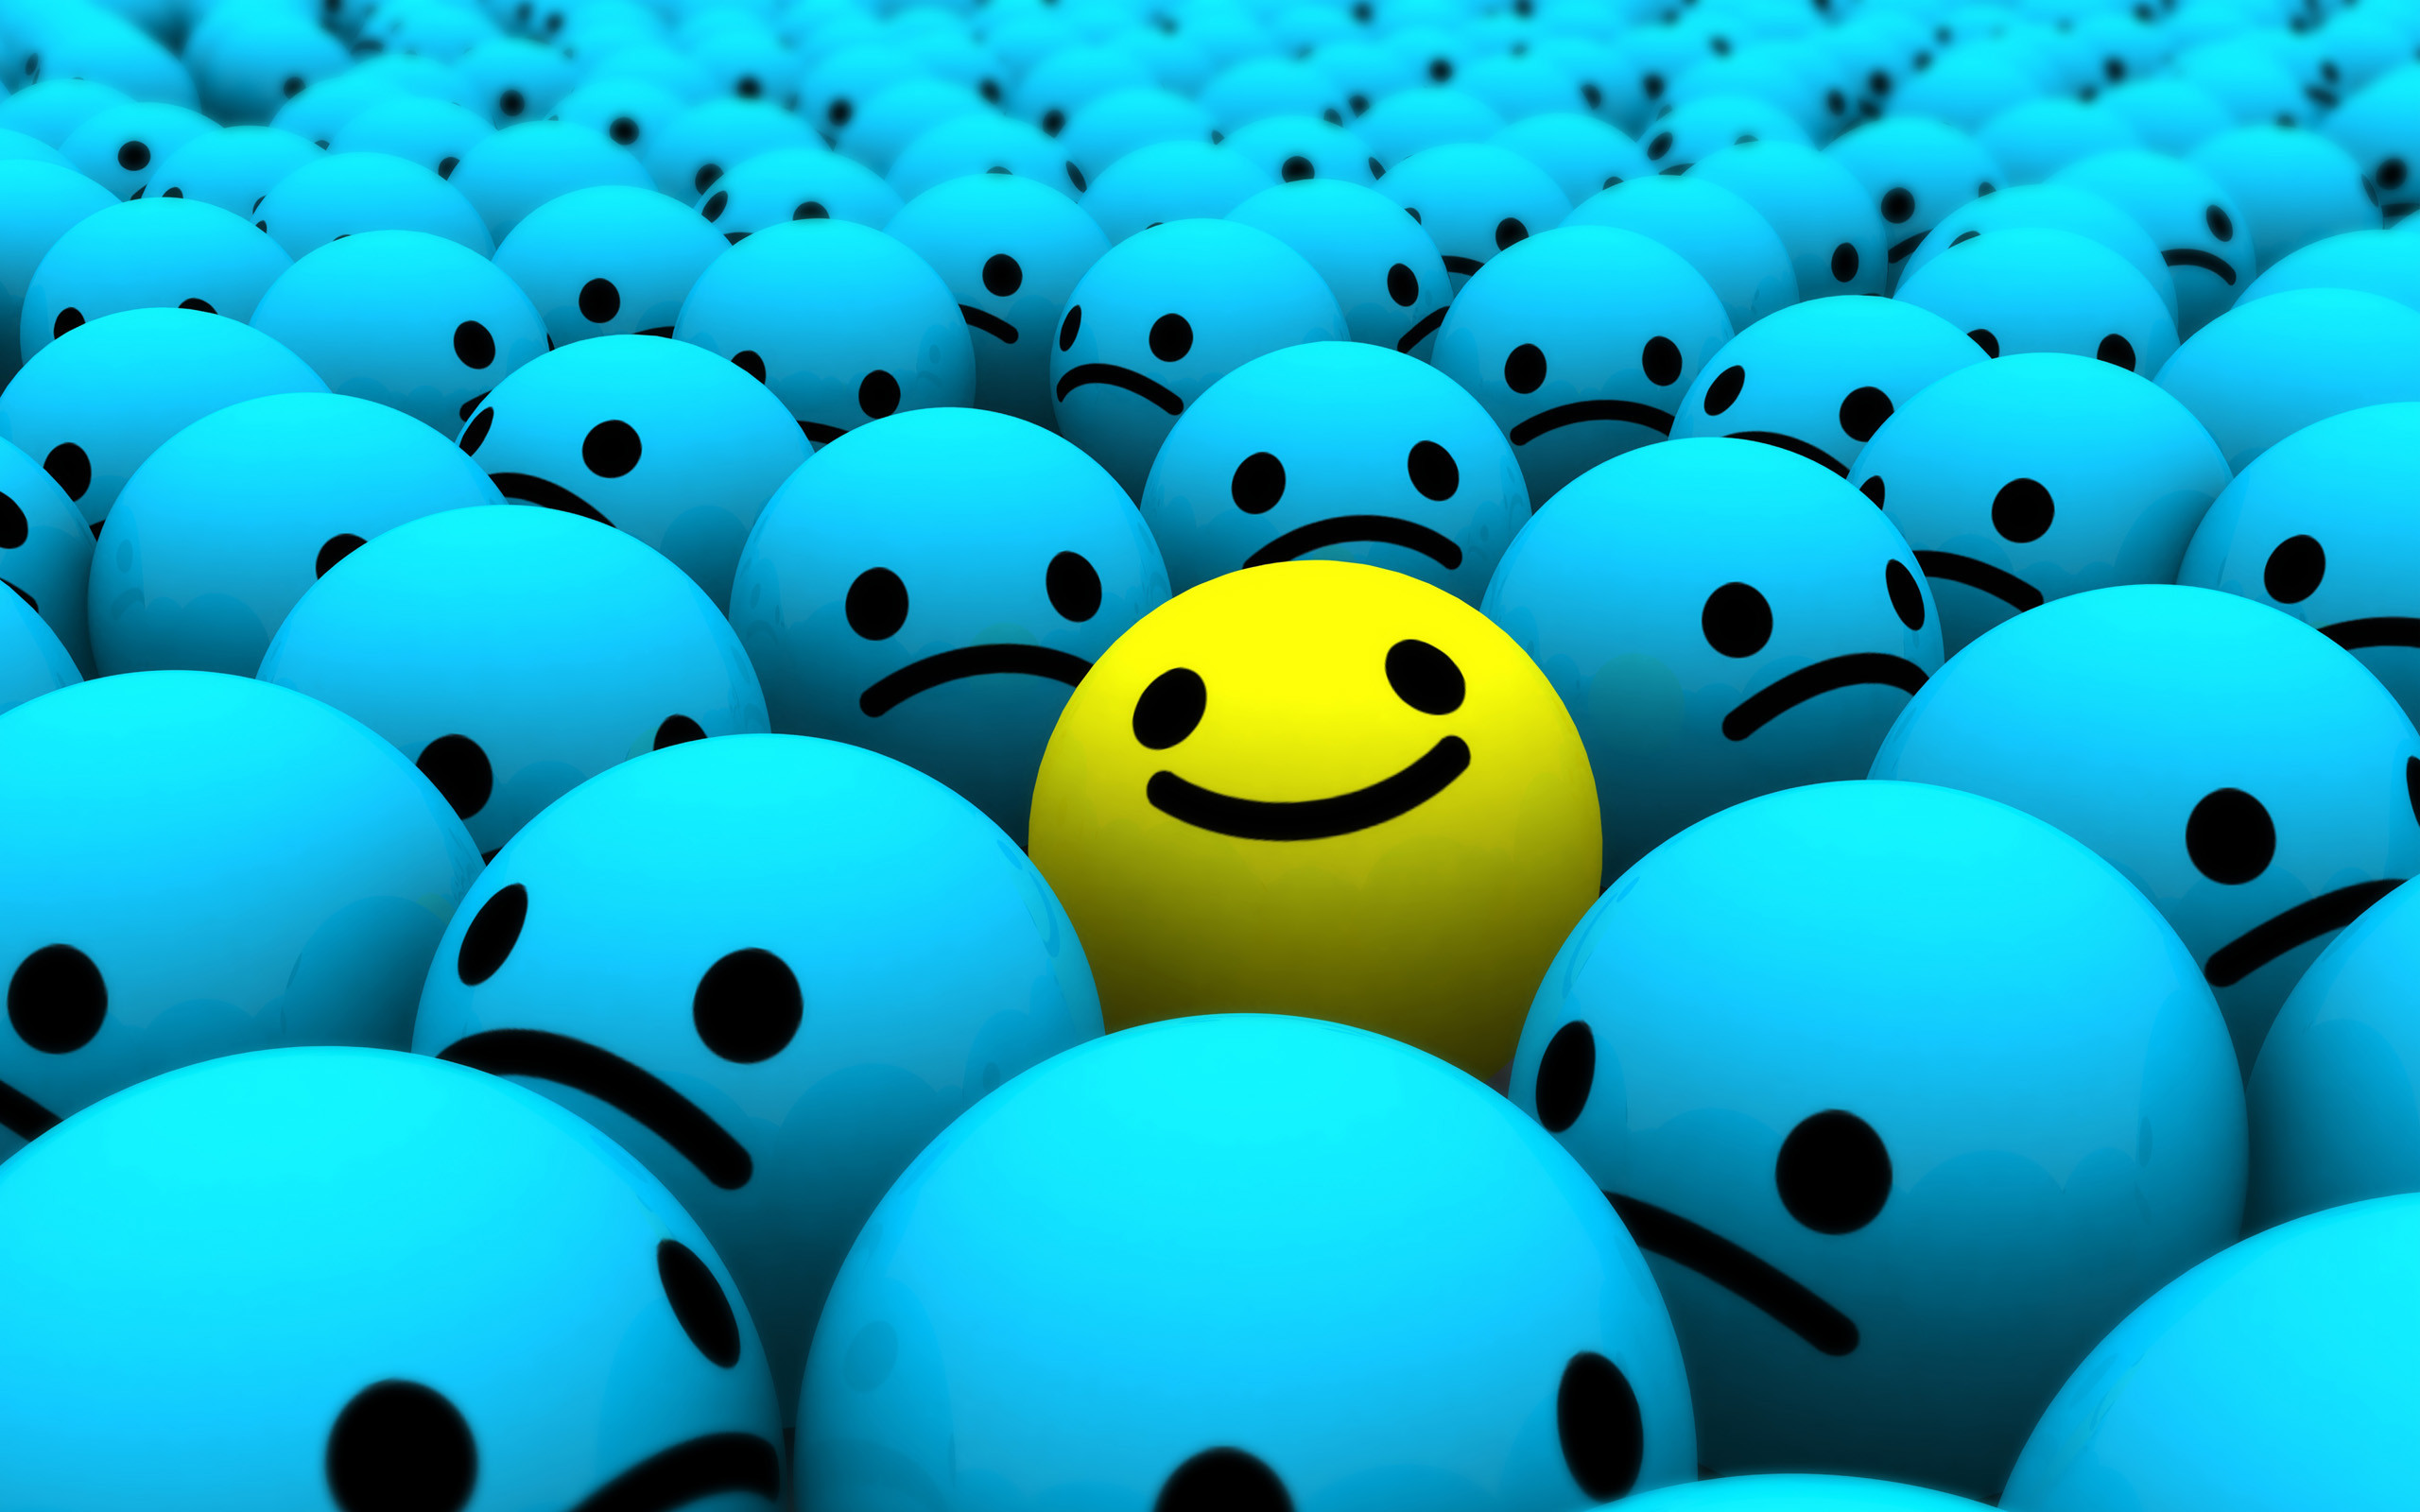 2560x1600 Smiley Face